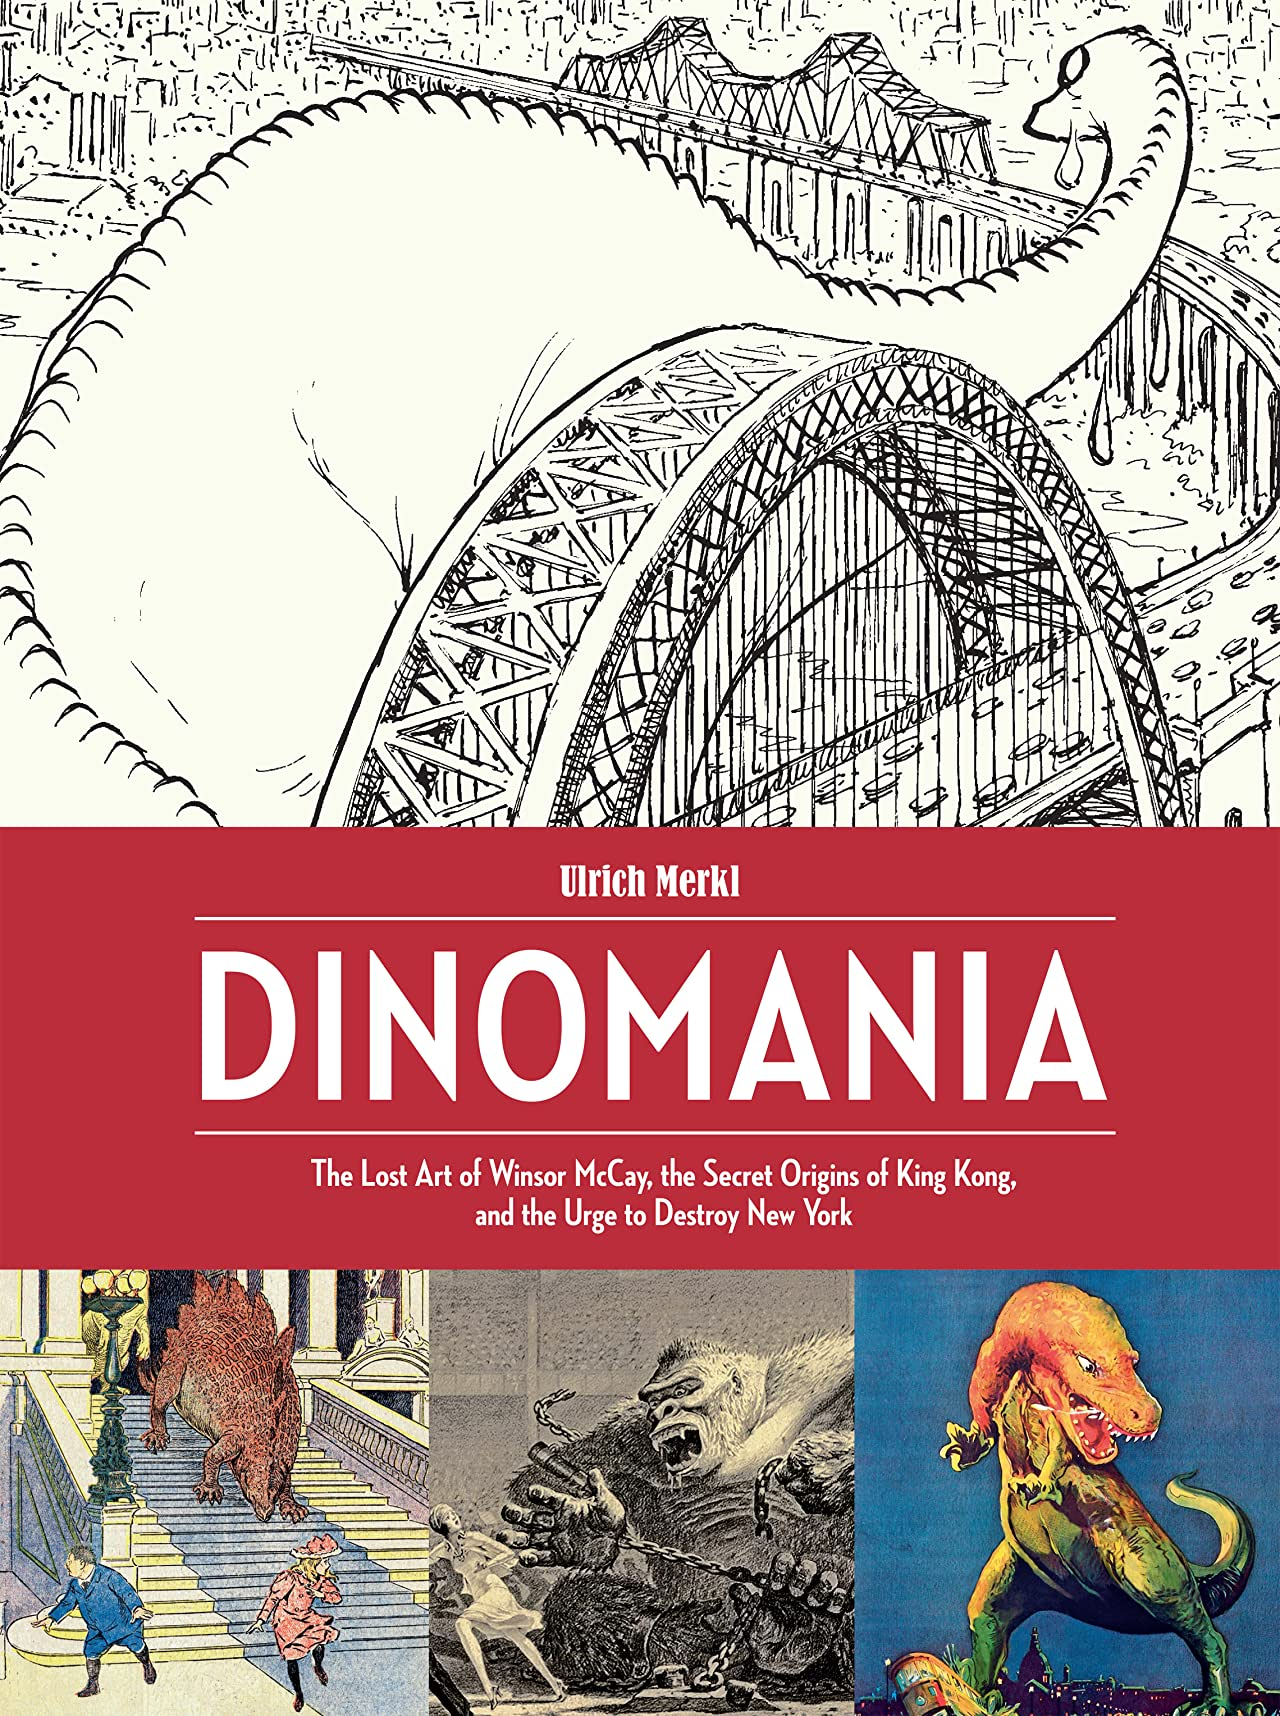 Dinomania: The Lost Art of Winsor McCay, The Secret Origins of King Kong, and the Urge to Destroy New York